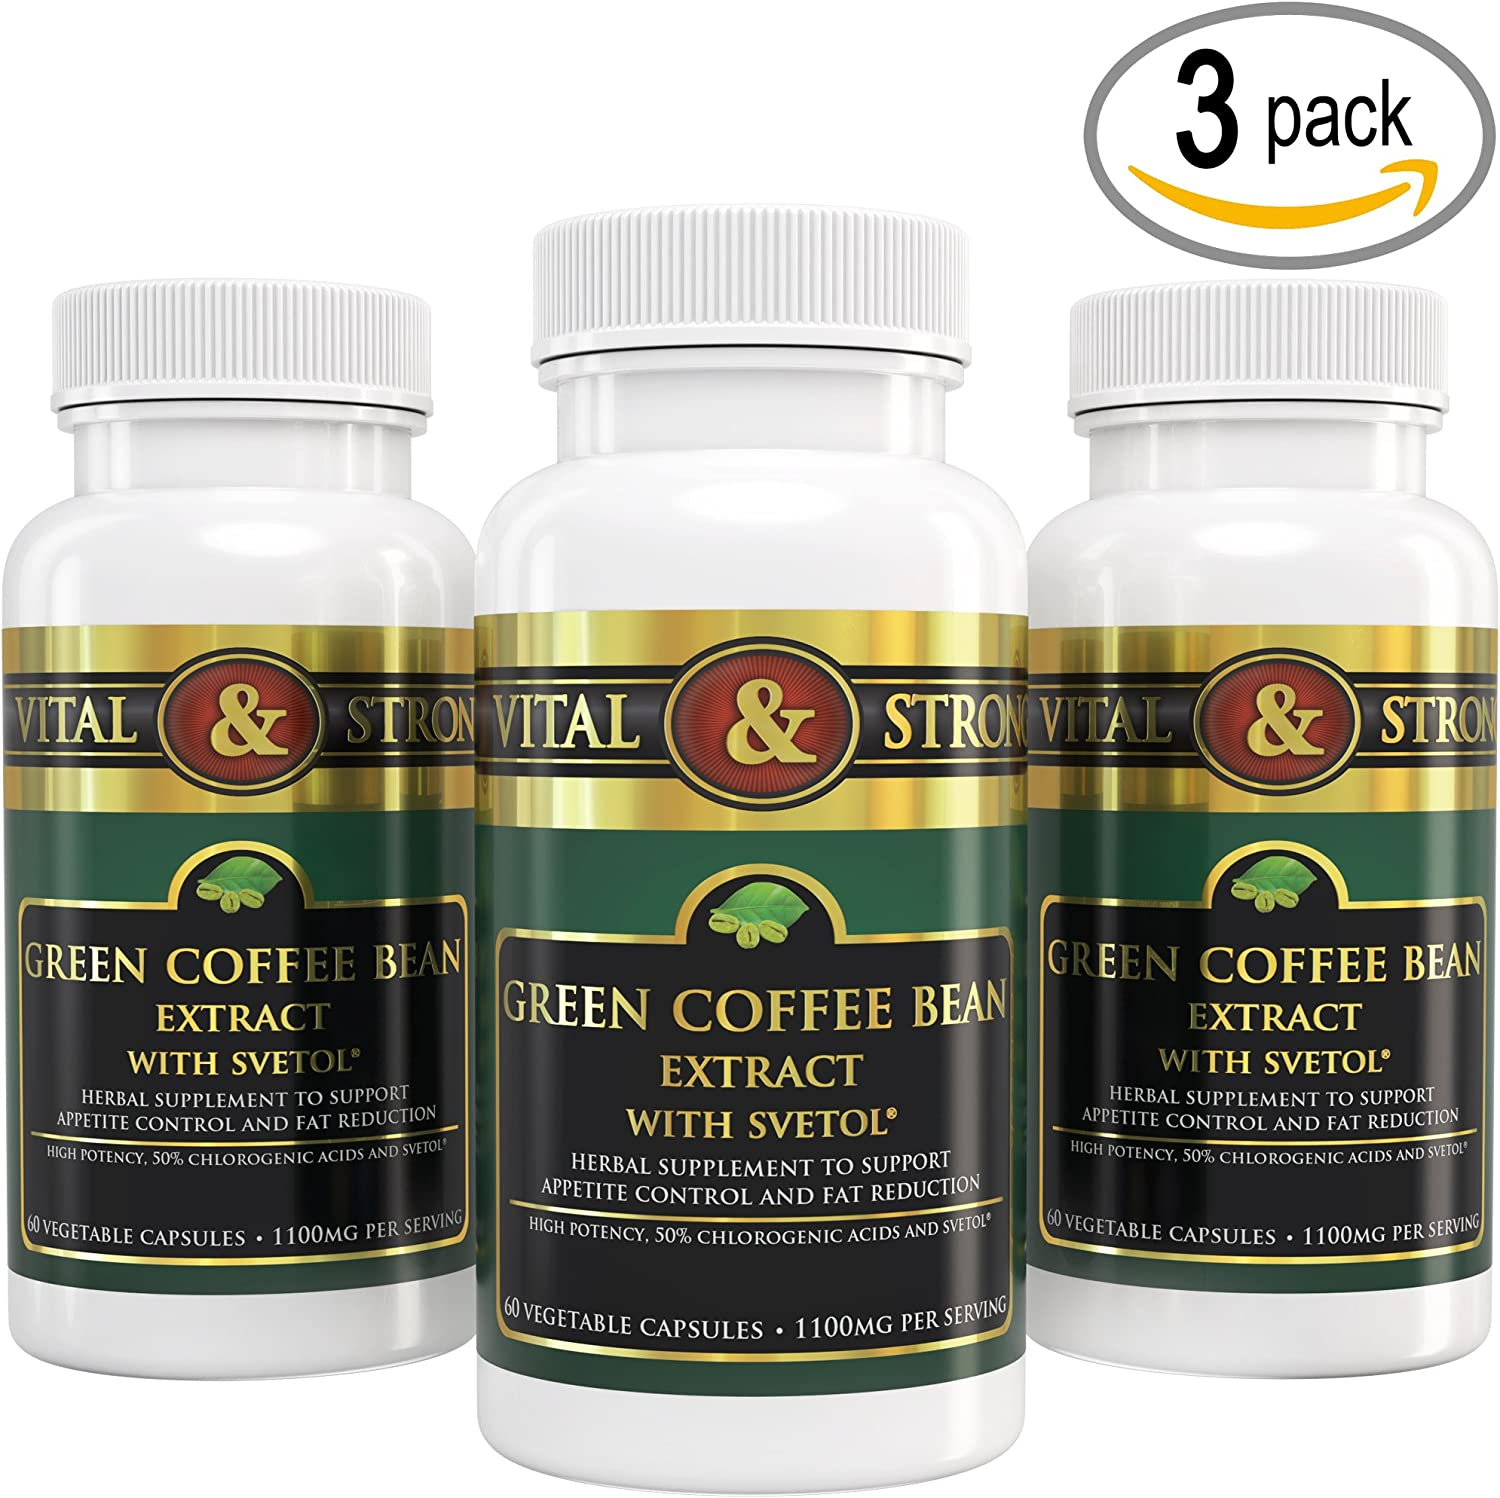 Vital Strong Green Coffee Bean Extract with Svetol 180 Count